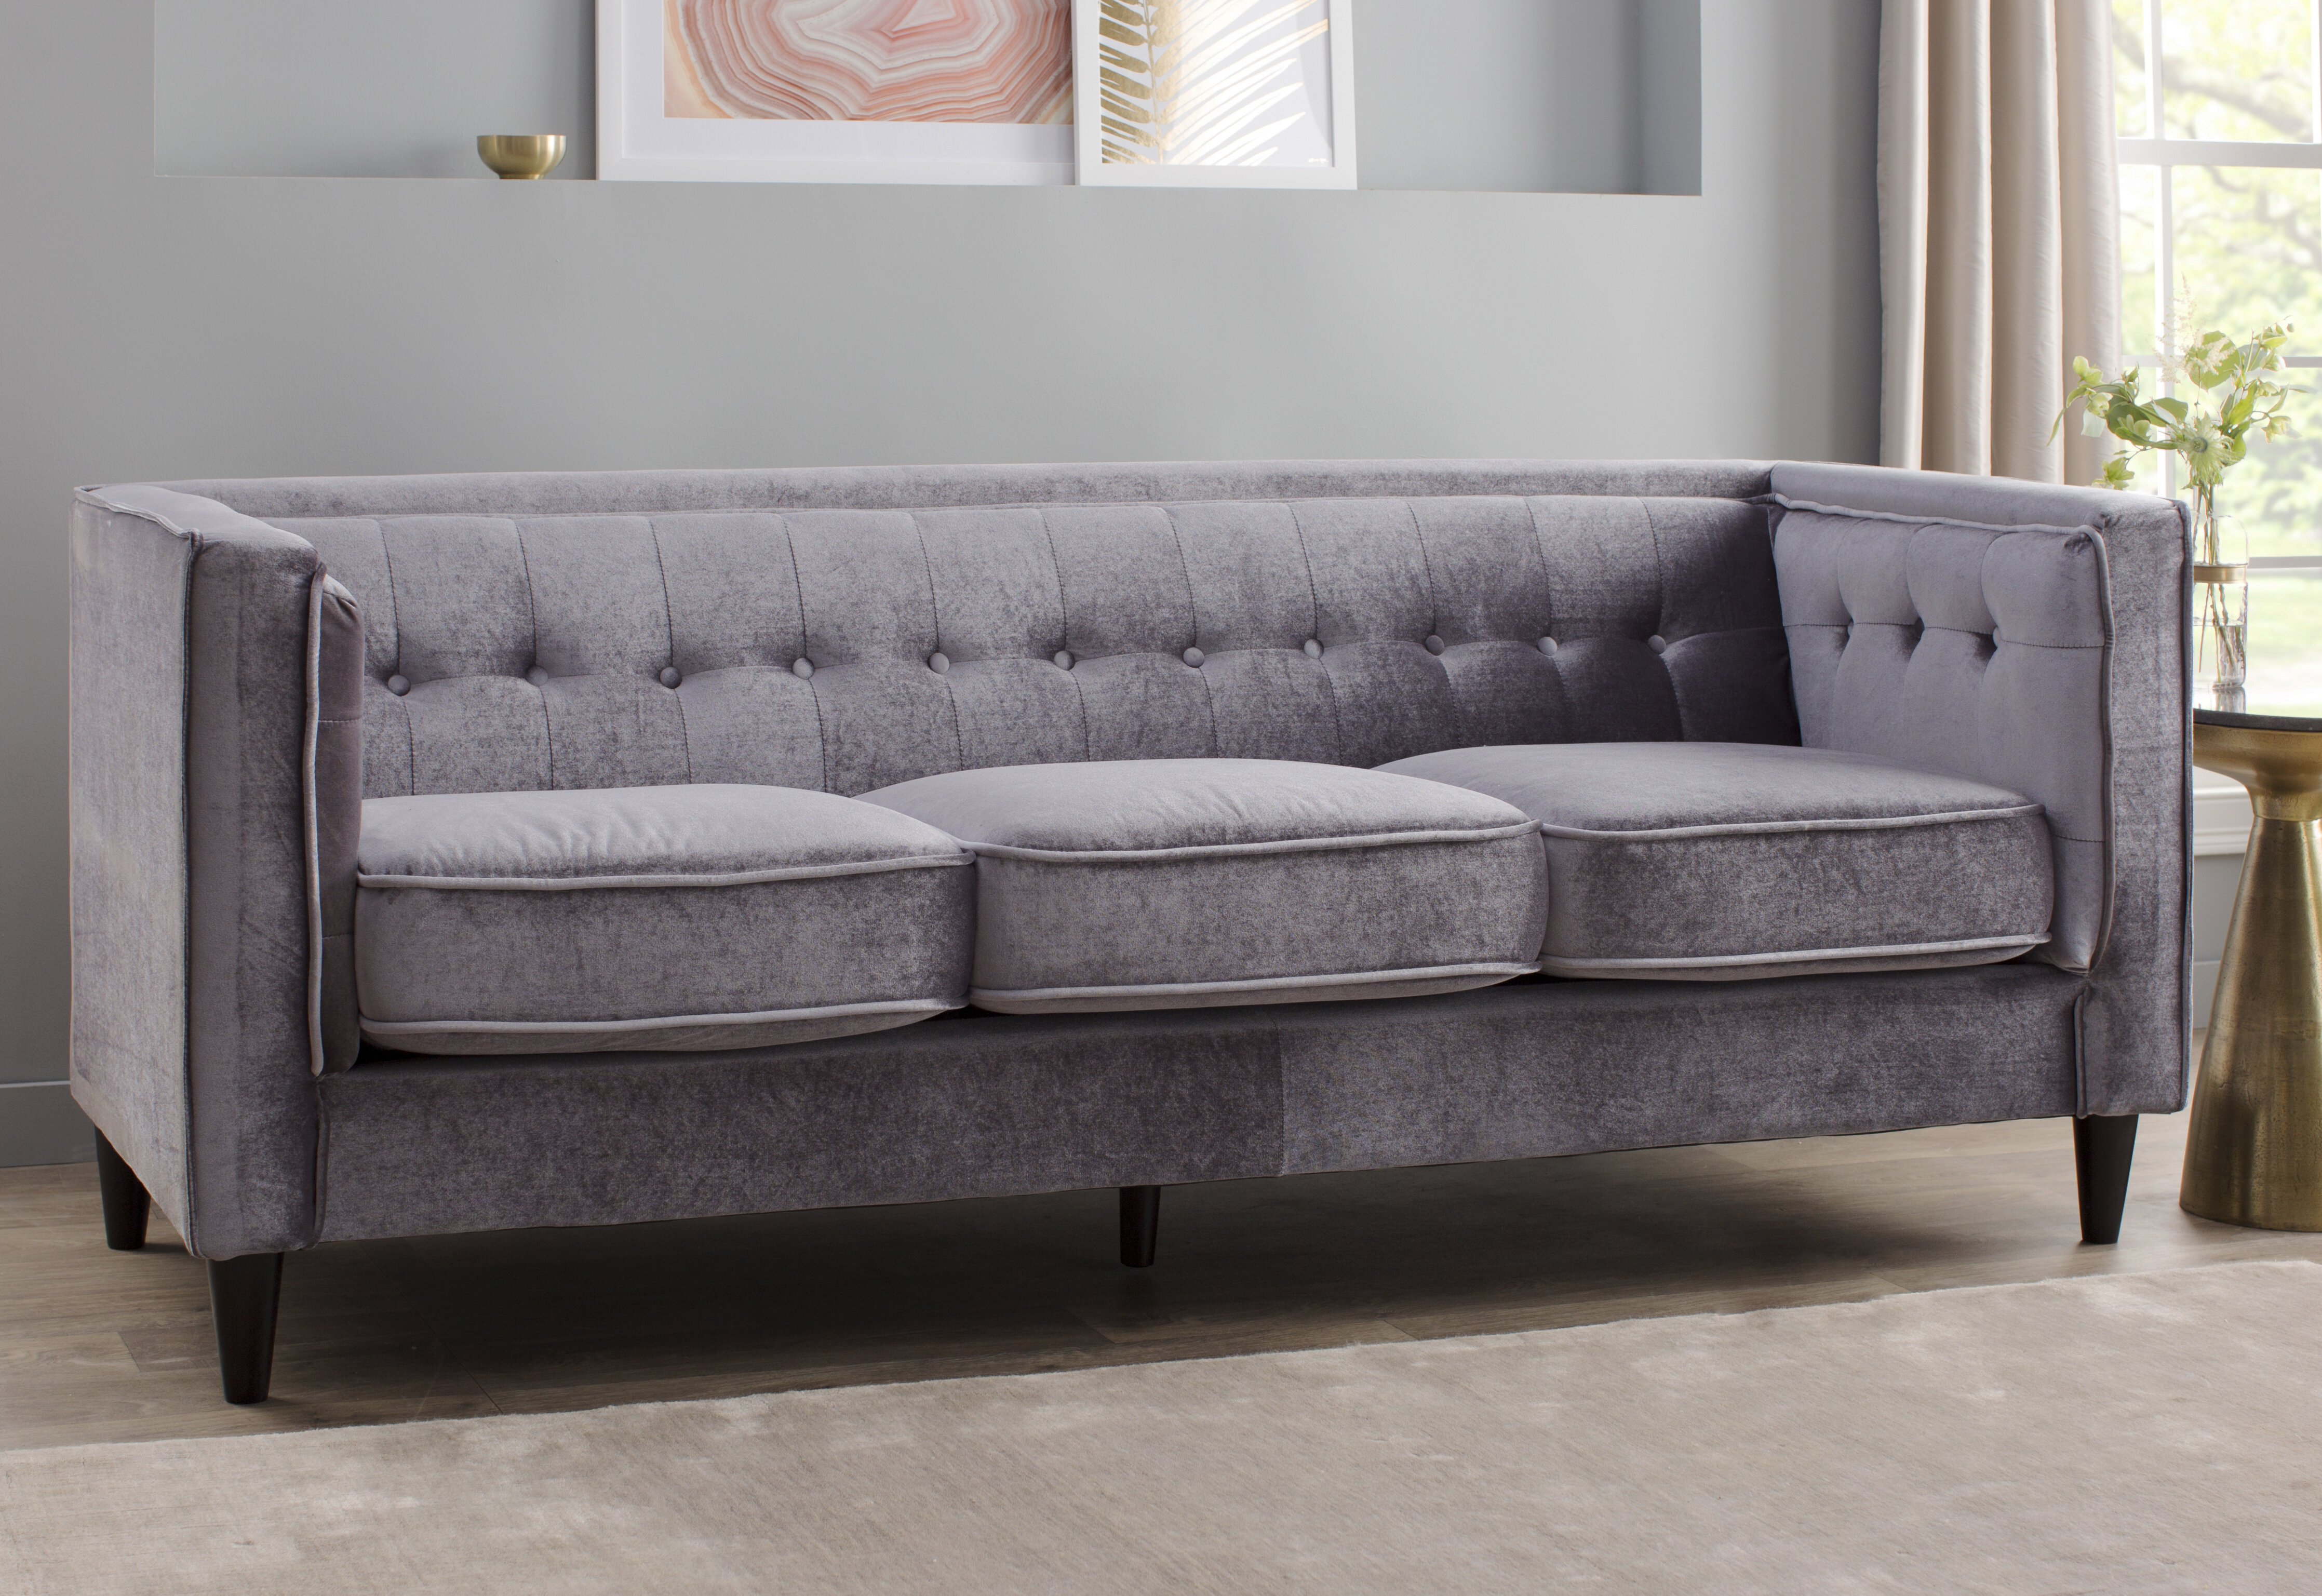 Willa Arlo Interiors Roberta Chesterfield Sofa Reviews Wayfair